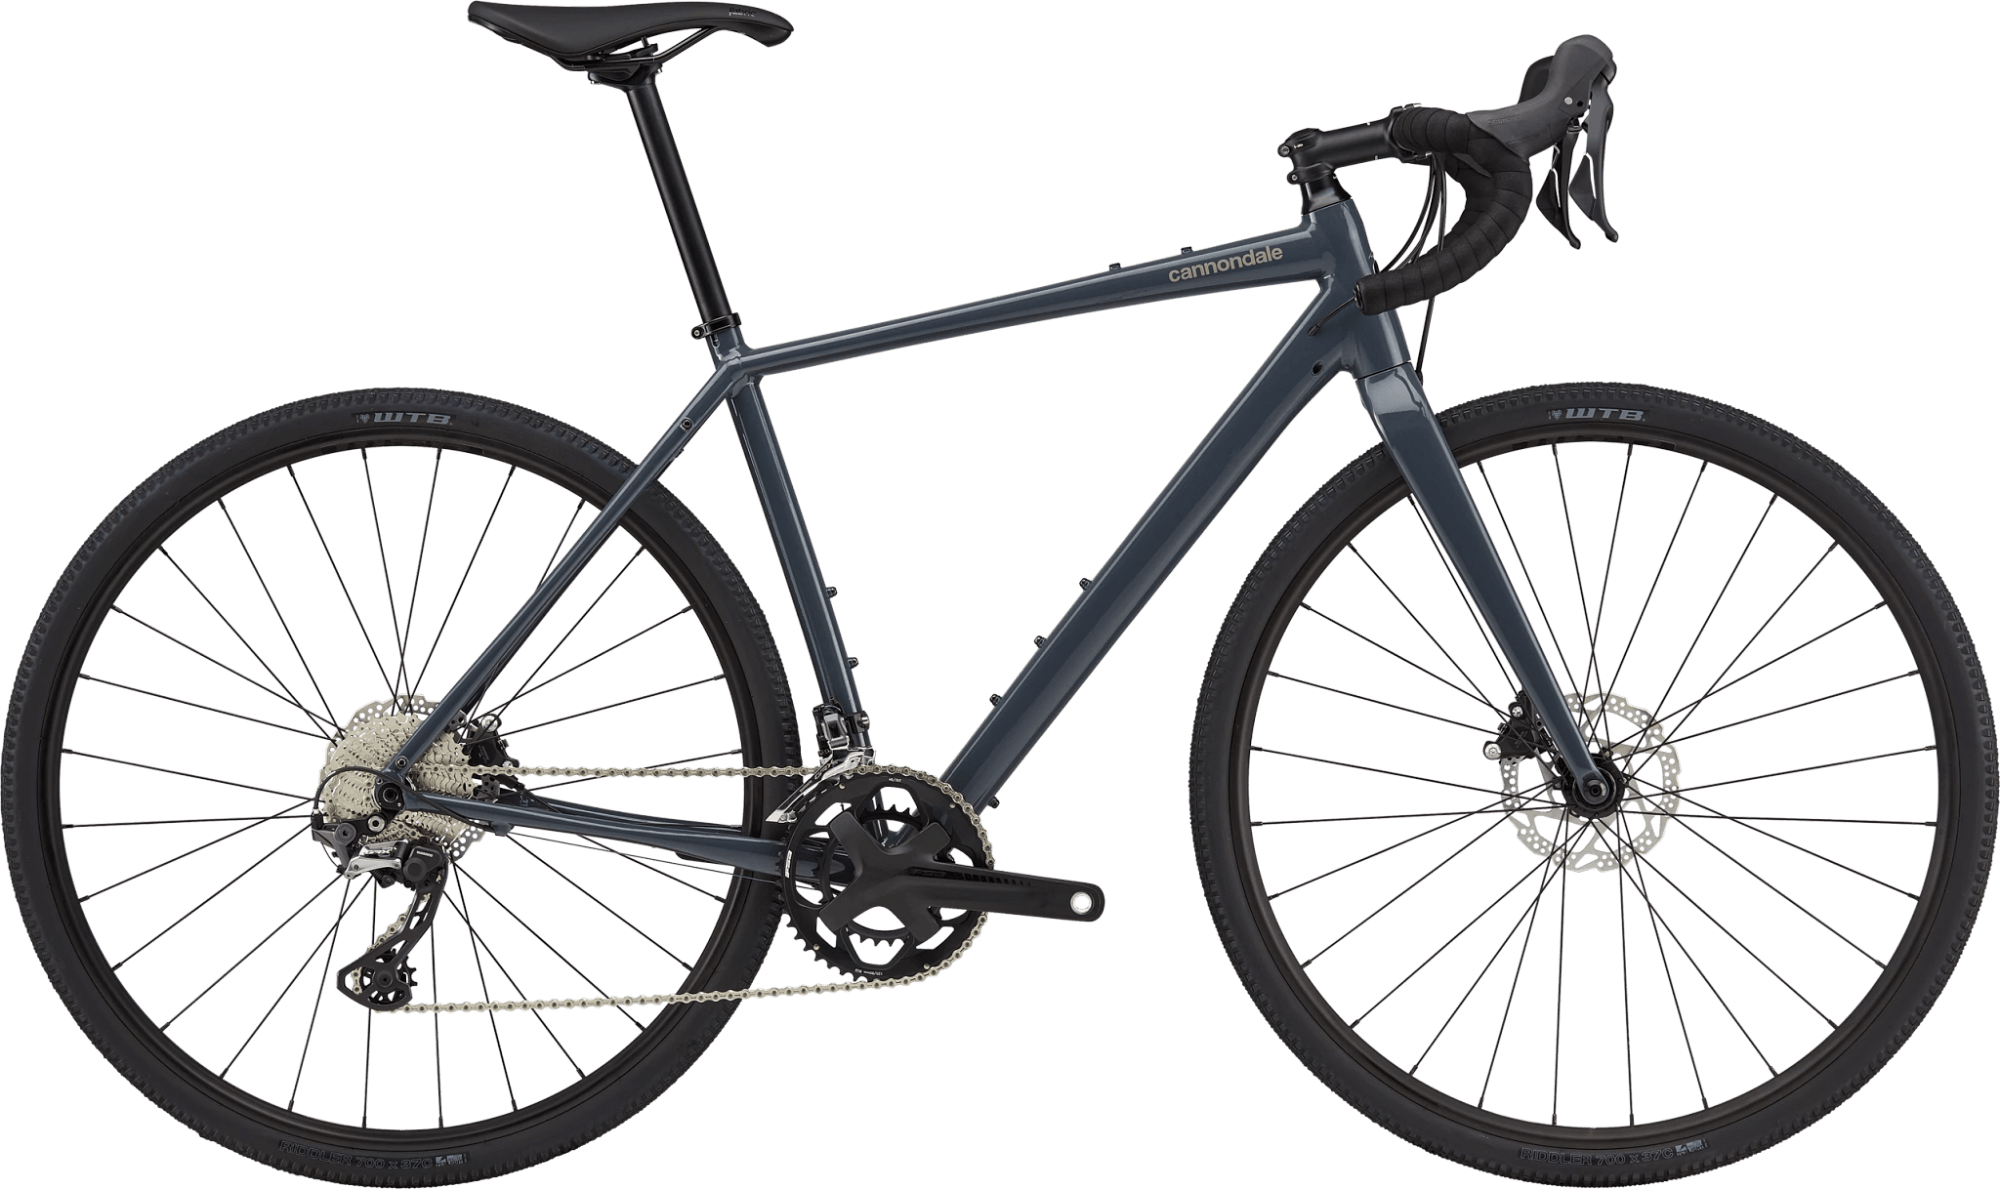 Cannondale Topstone 1 2021 - Cycles Galleria Melbourne